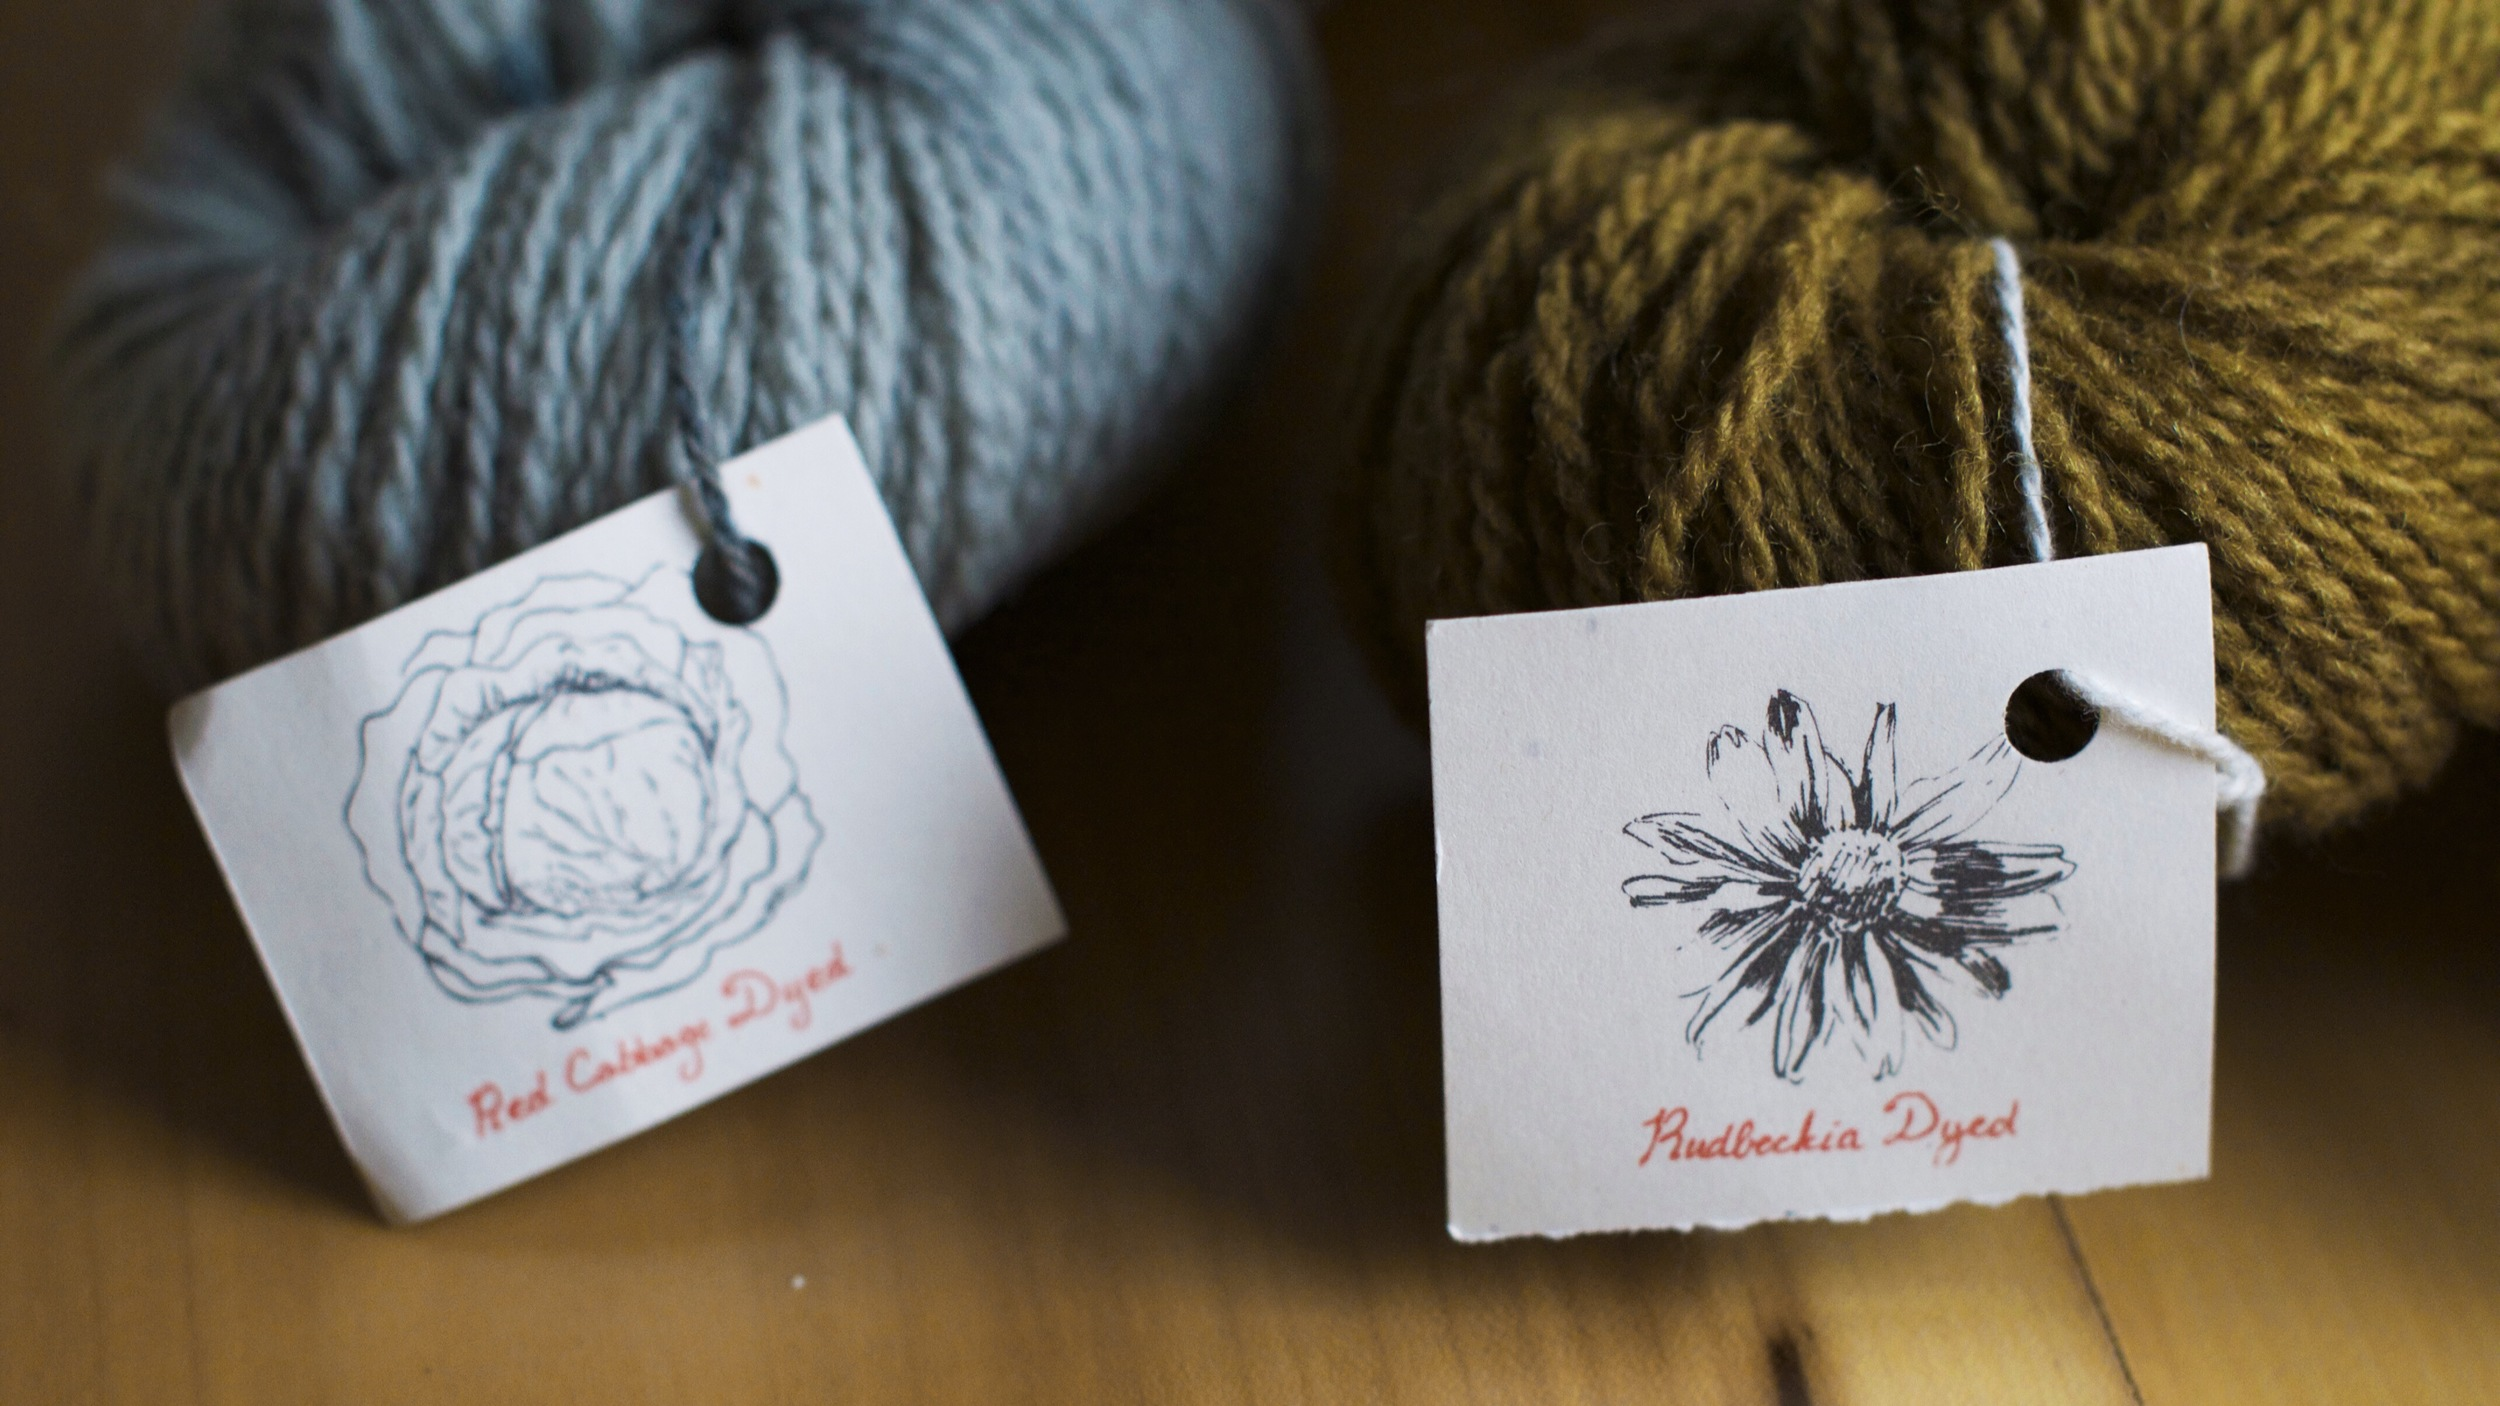 I am a sucker for sweet little details, and I just adore these beautifully printed tags that share what each skein was dyed with!